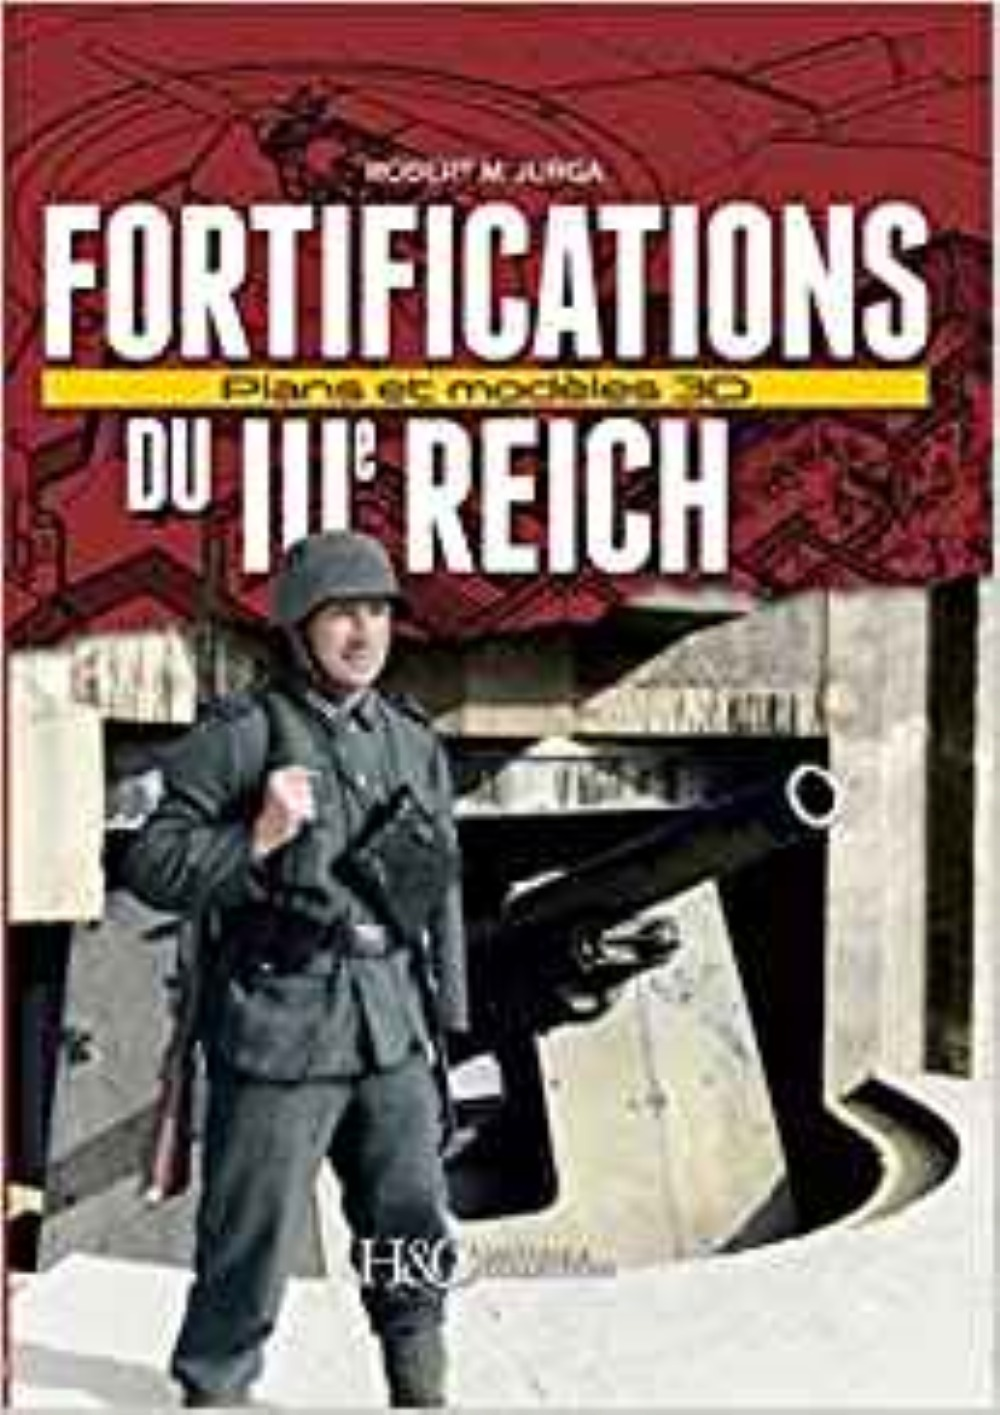 LES FORTIFICATIONS DU IIIE REICH